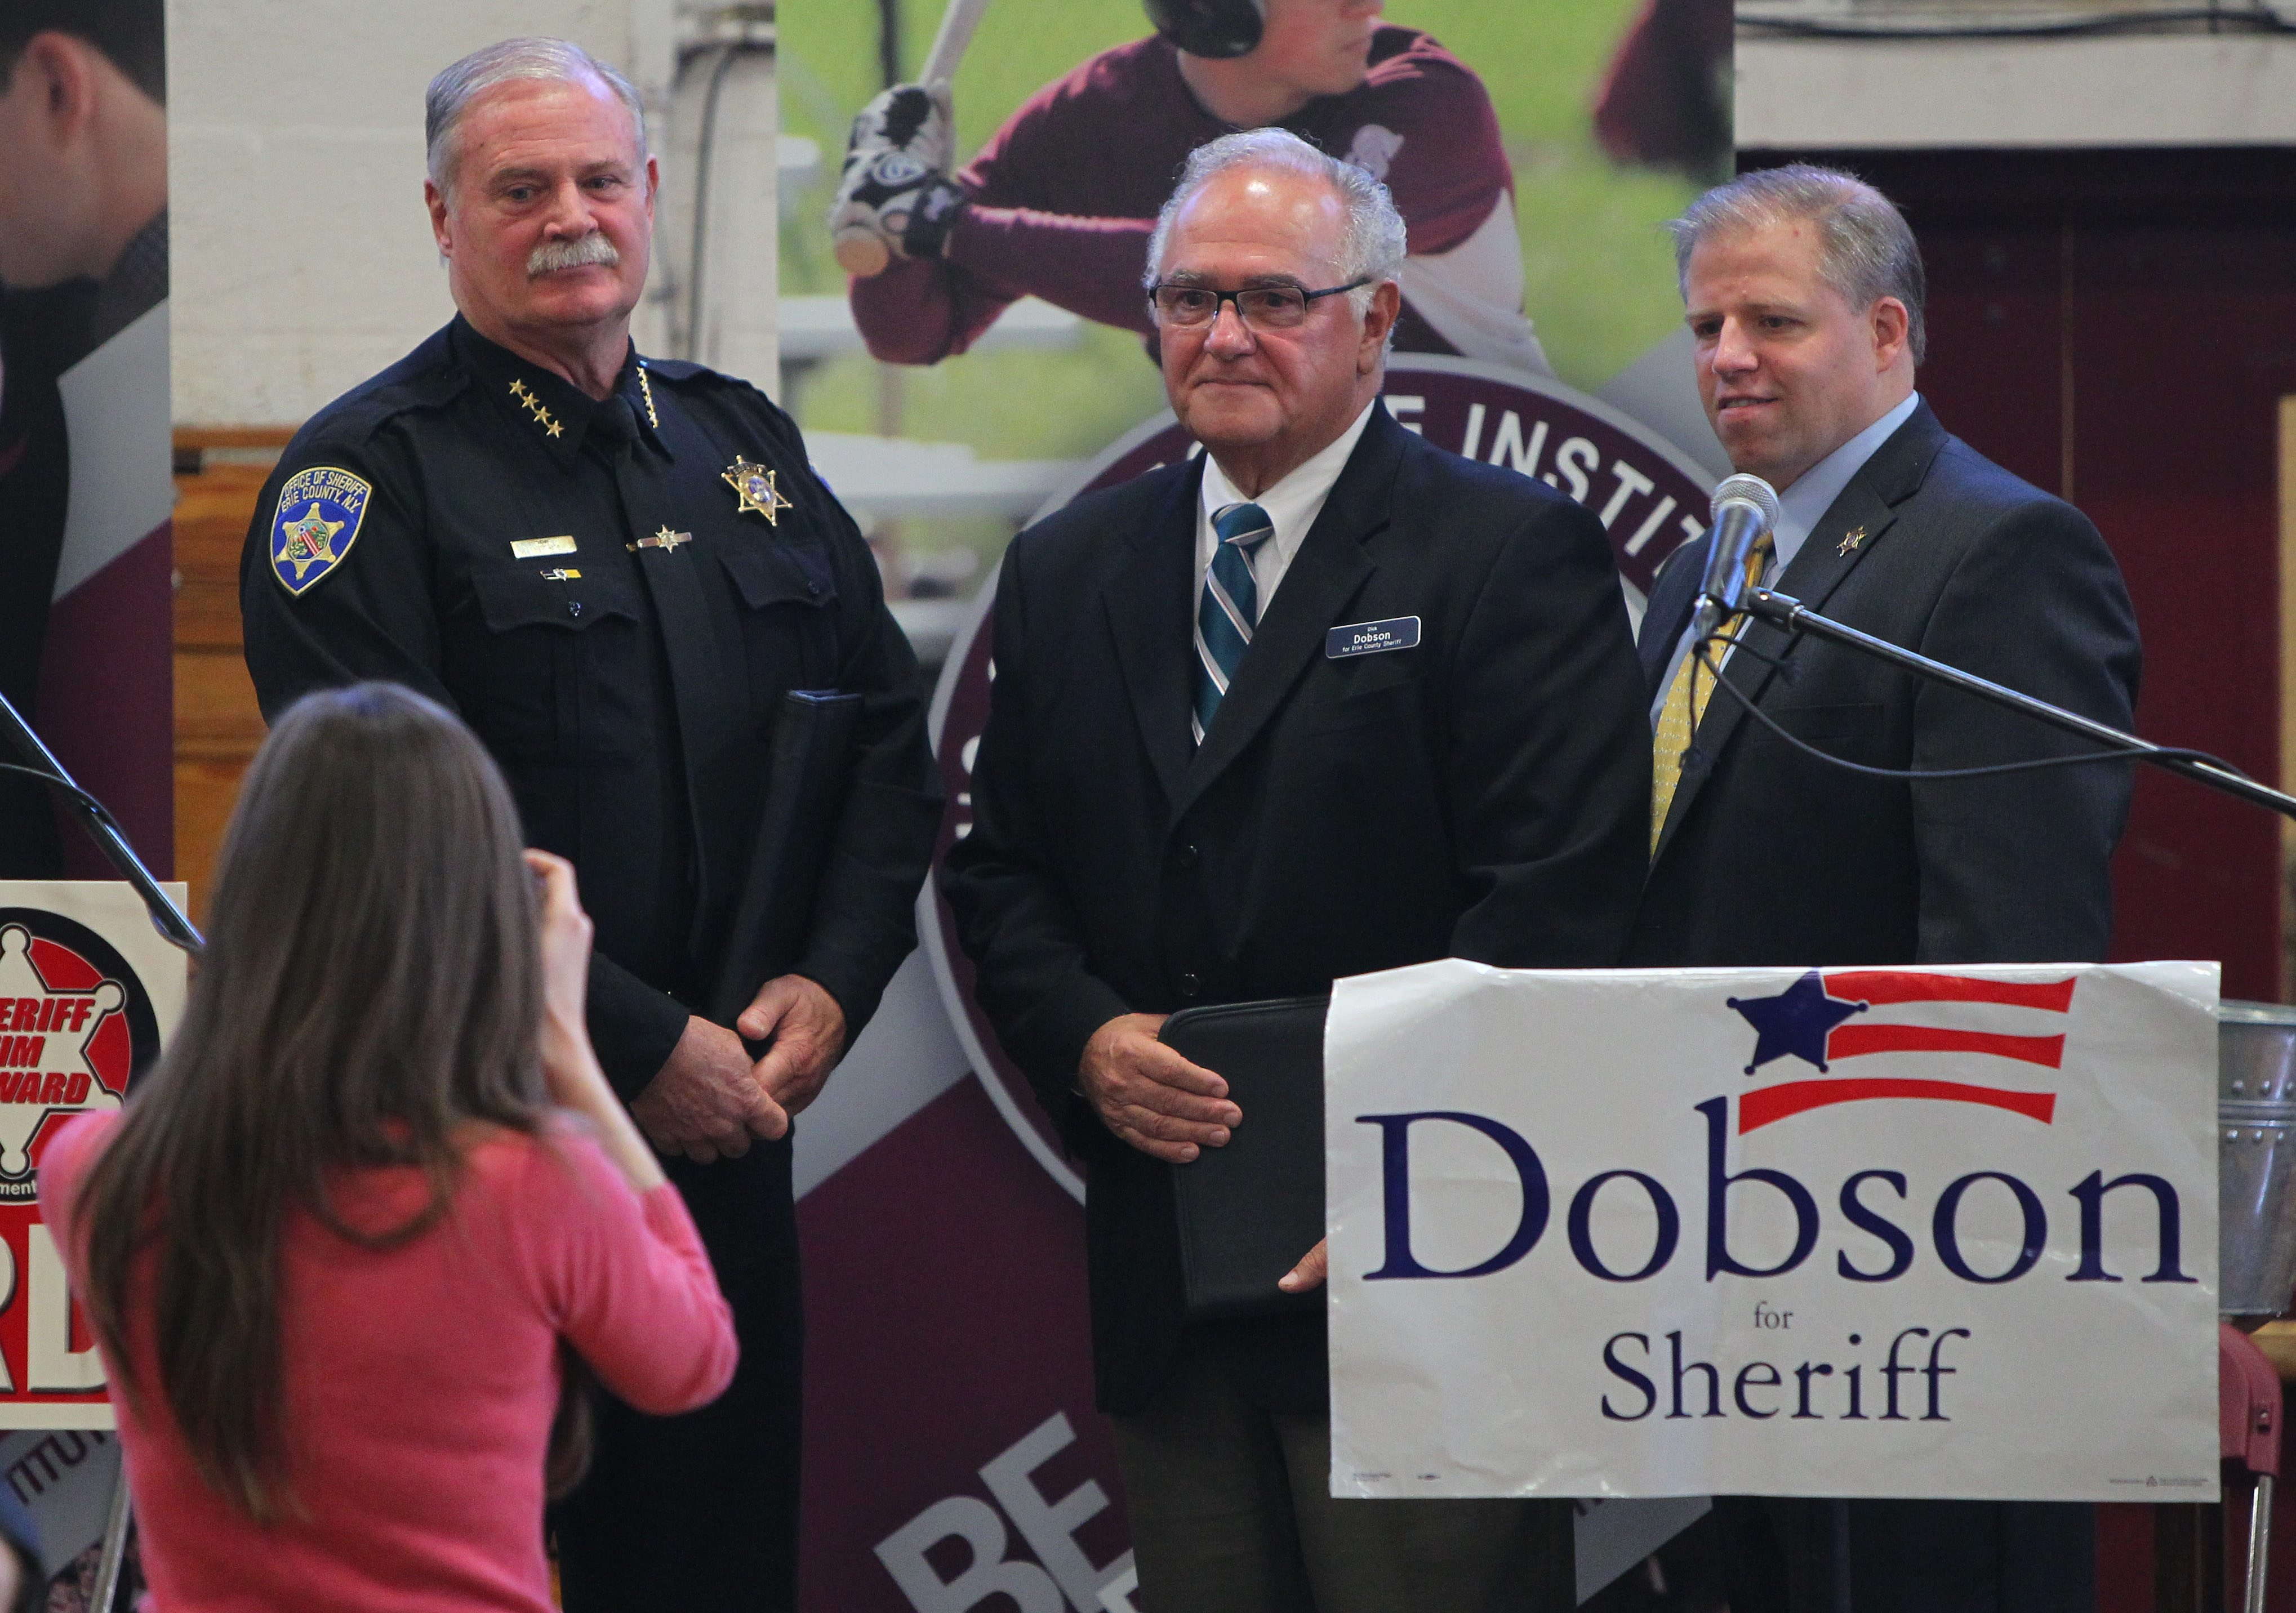 Candidates are, from left, Sheriff Timothy B. Howard, Democrat Richard E. Dobson and minor party candidate Bert D. Dunn.